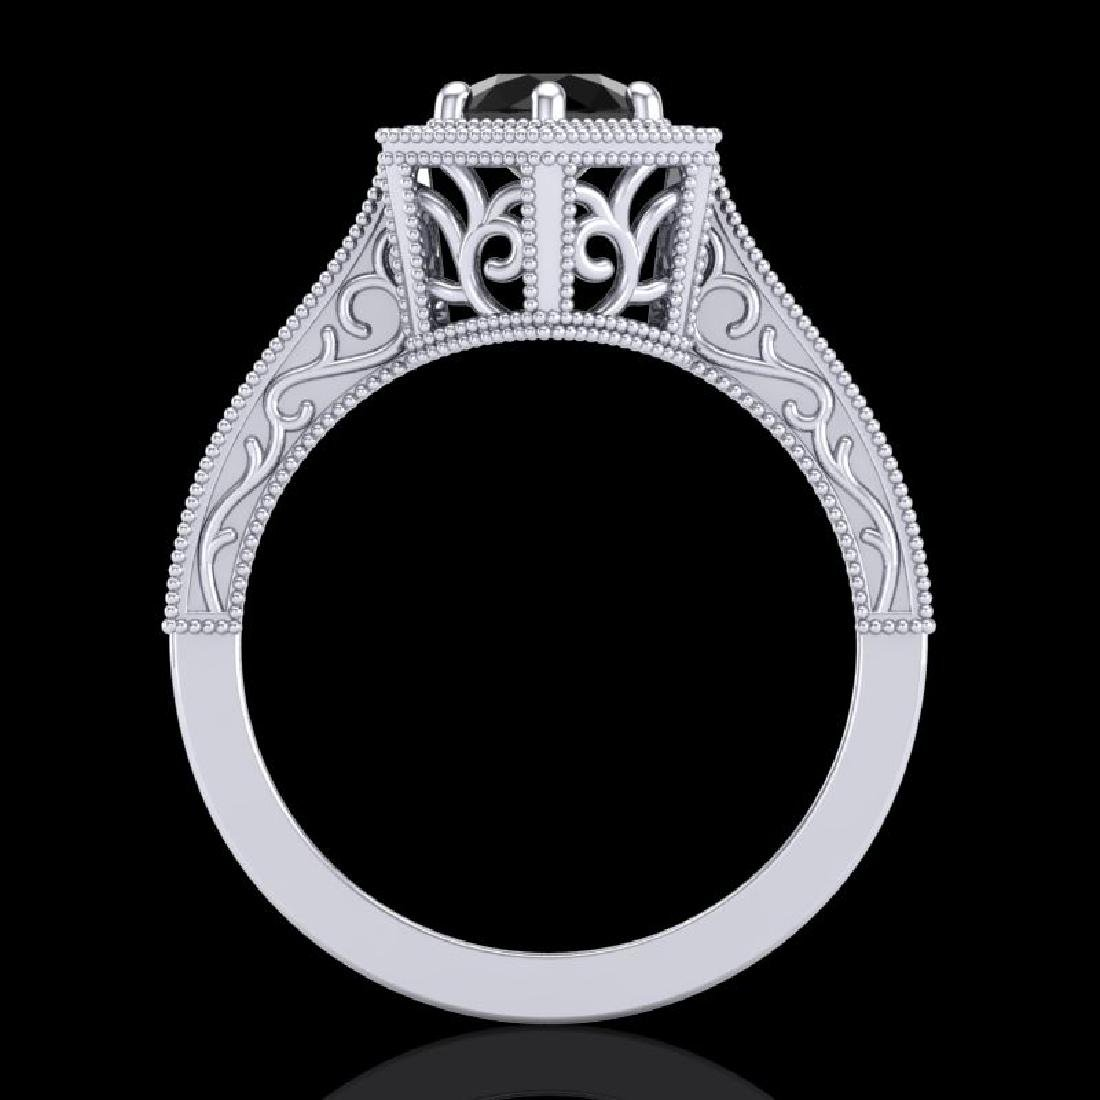 0.77 CTW Fancy Black Diamond Solitaire Engagement Art - 3